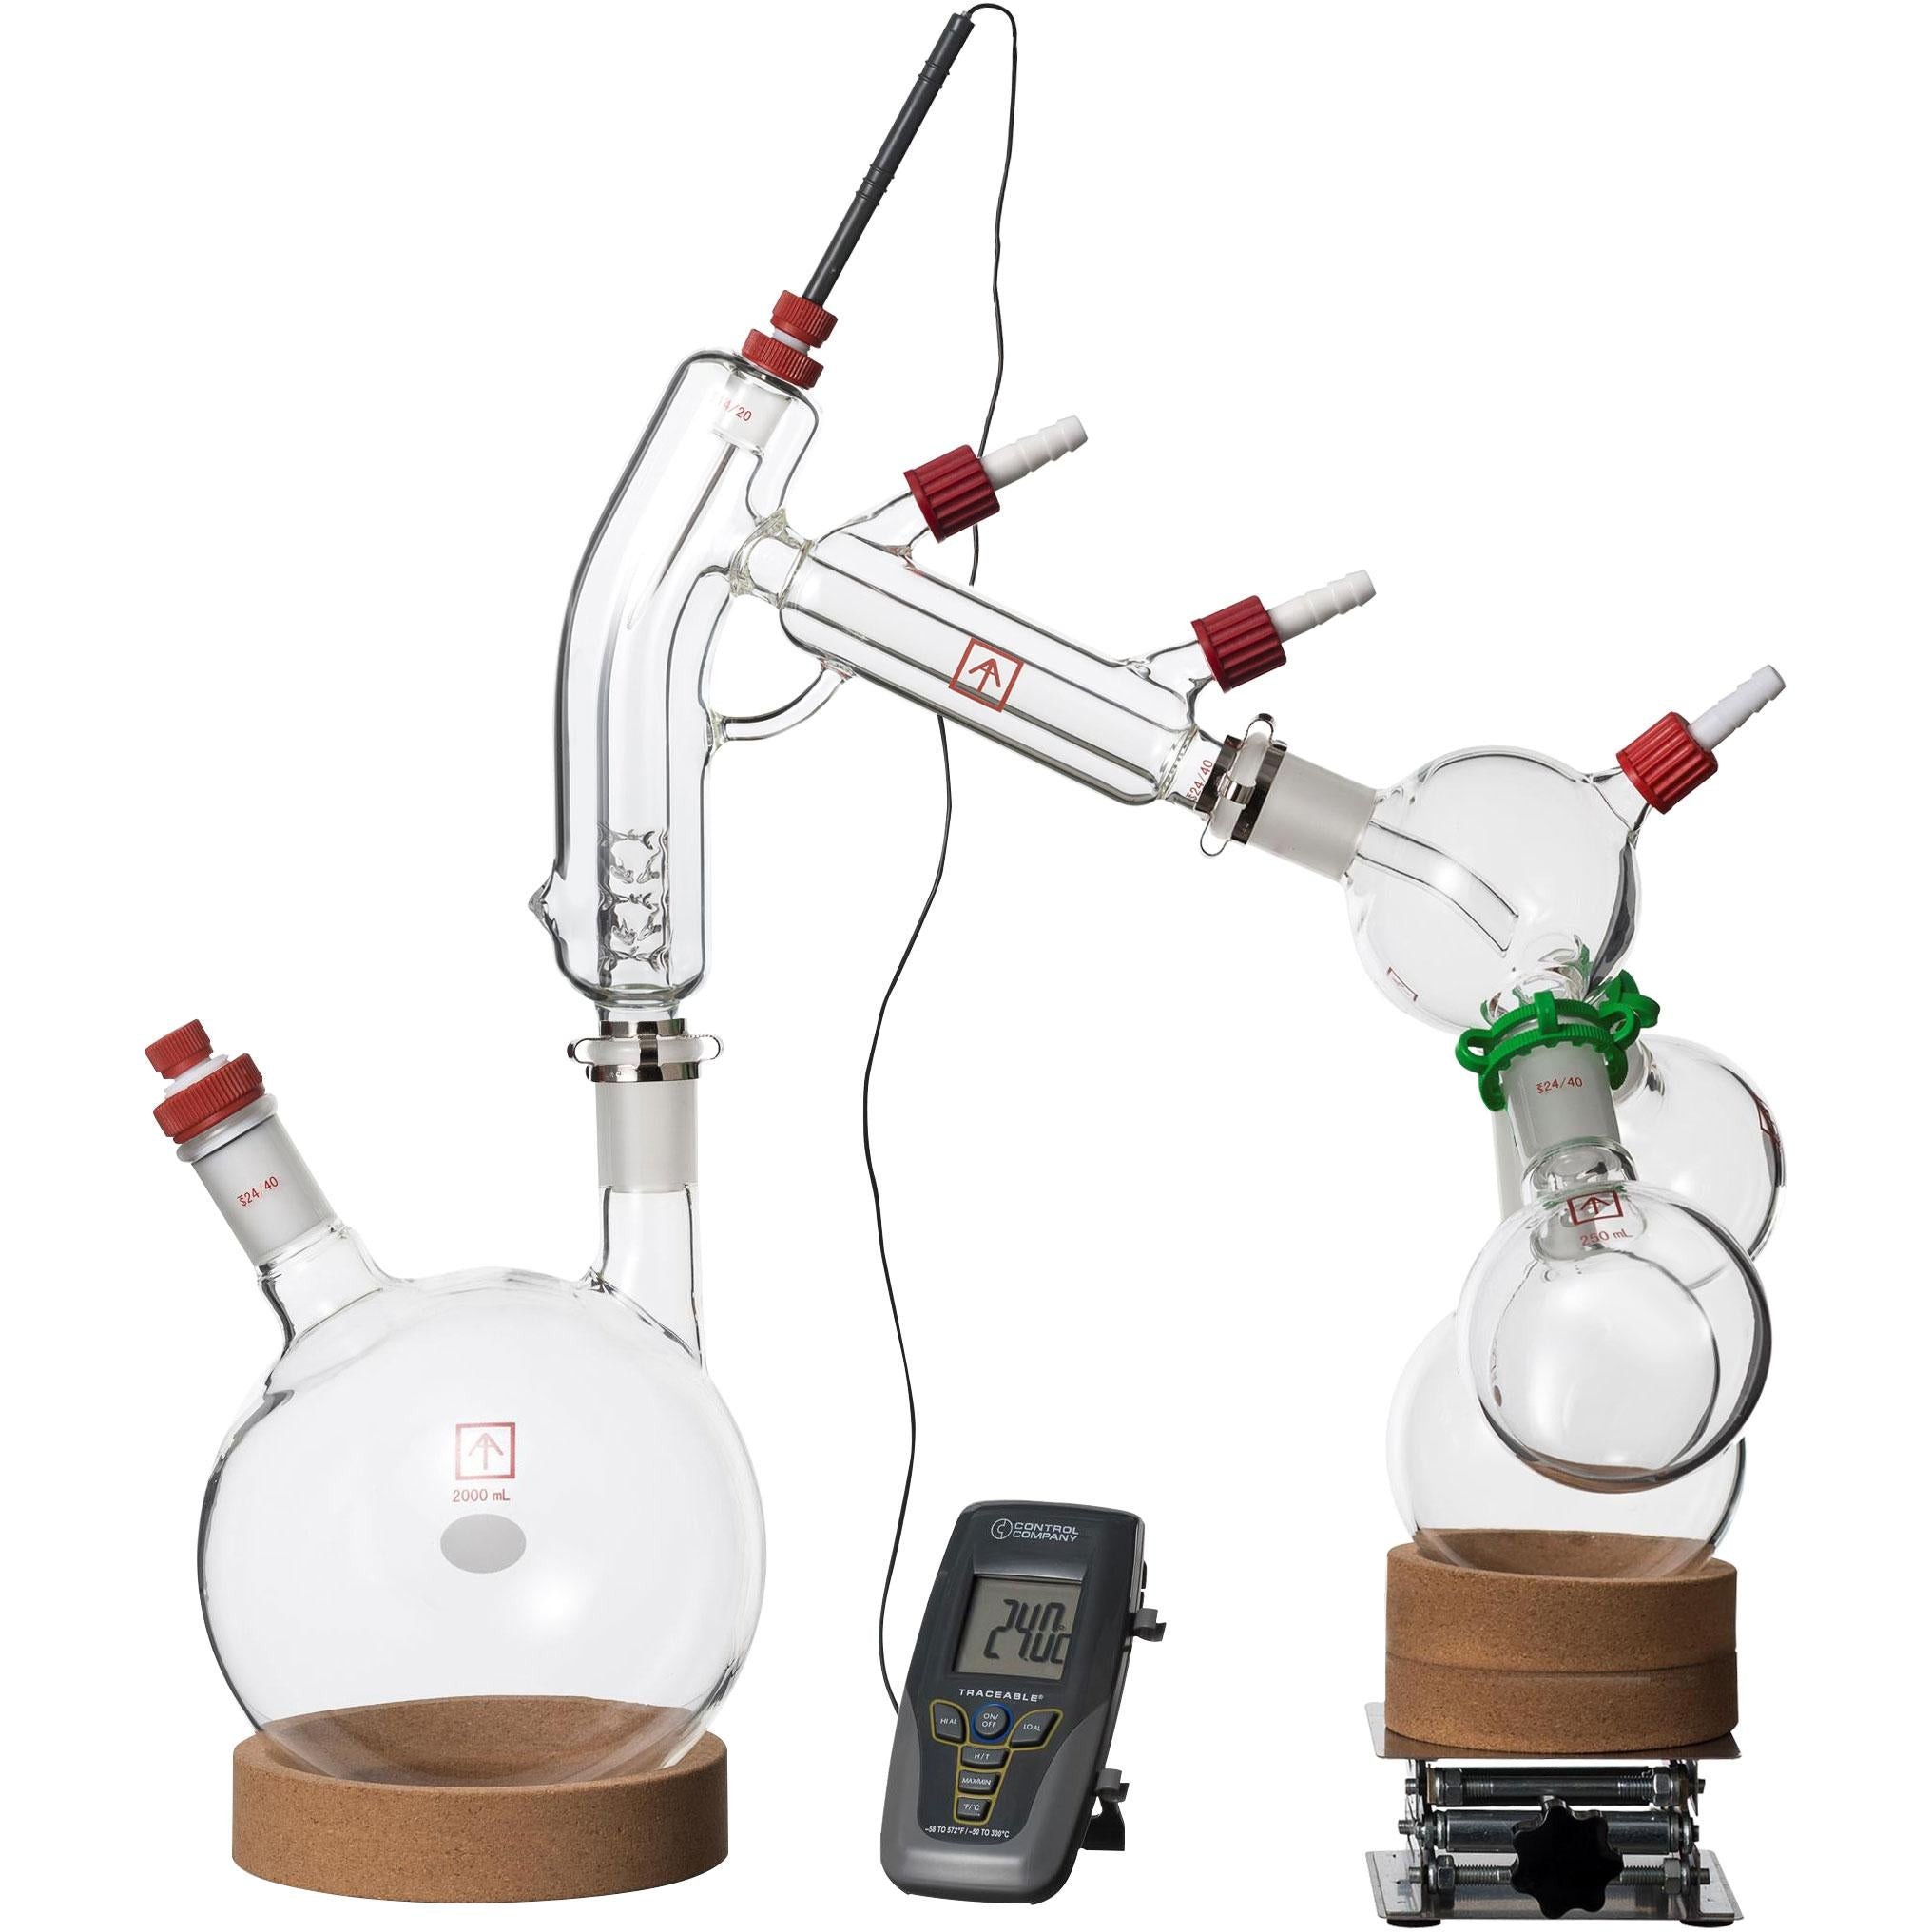 Ai 2L Short Path Distillation Kit, with Two Set-up Options